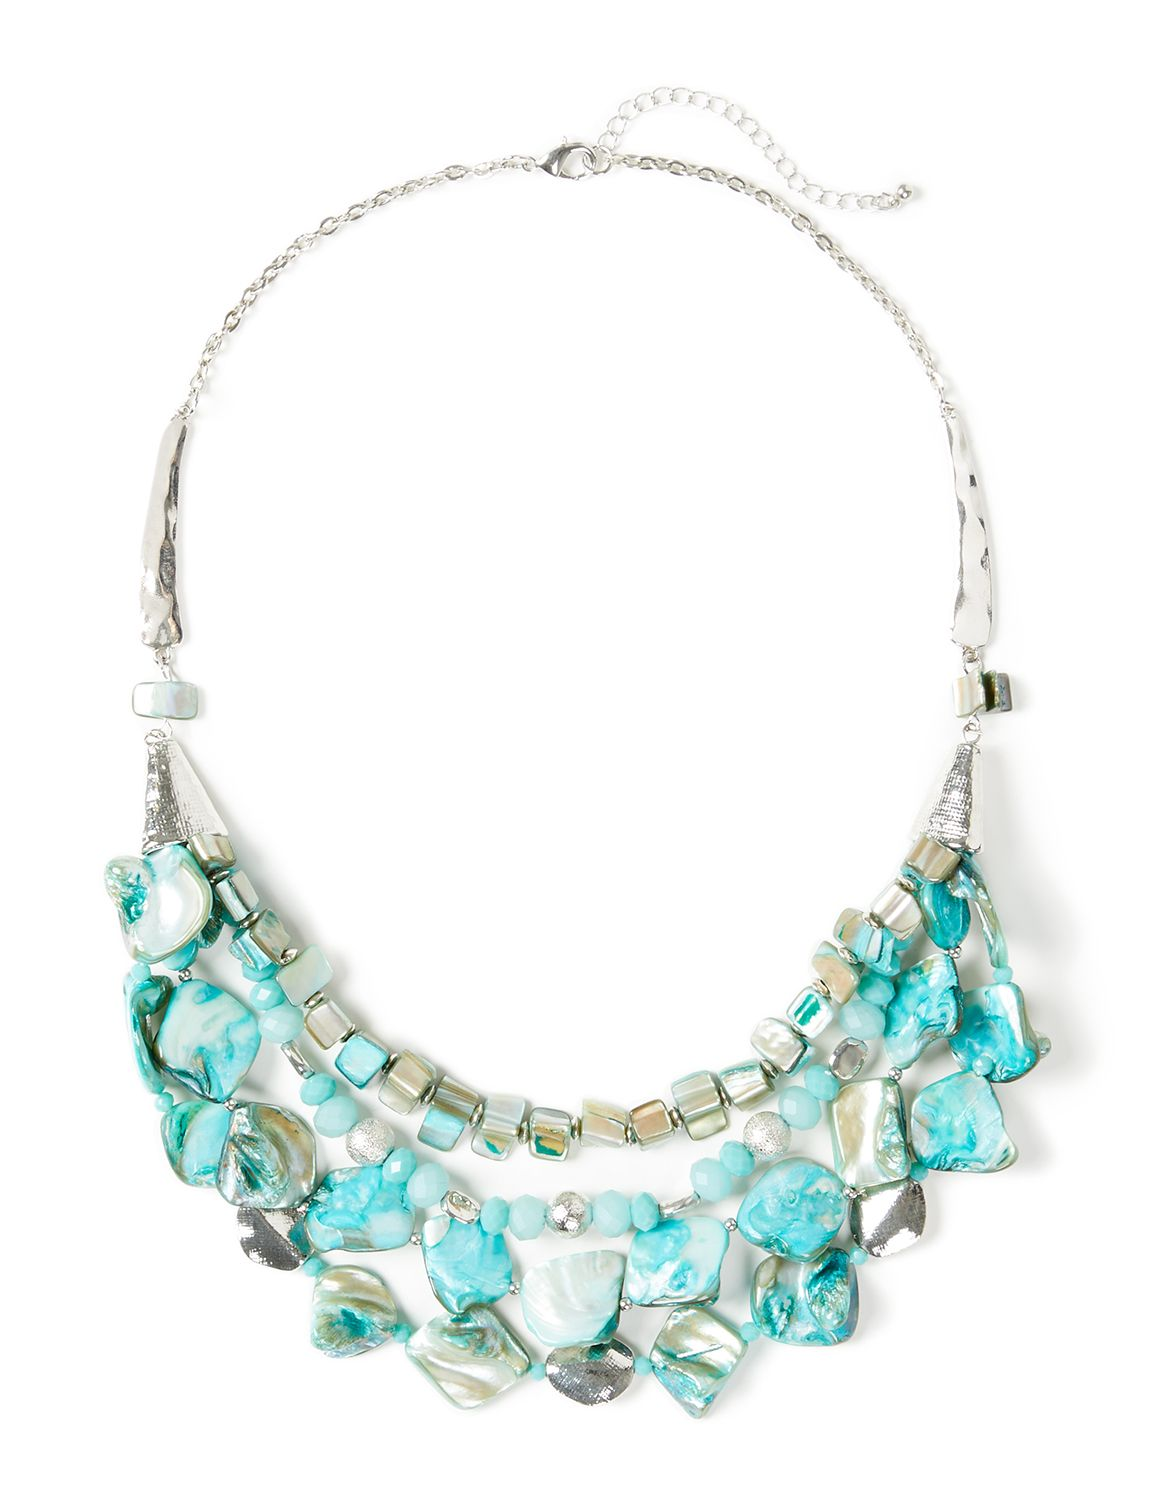 Monaco Reef Necklace CB Short Shell bib teal NK 409388NZ MP-300097703